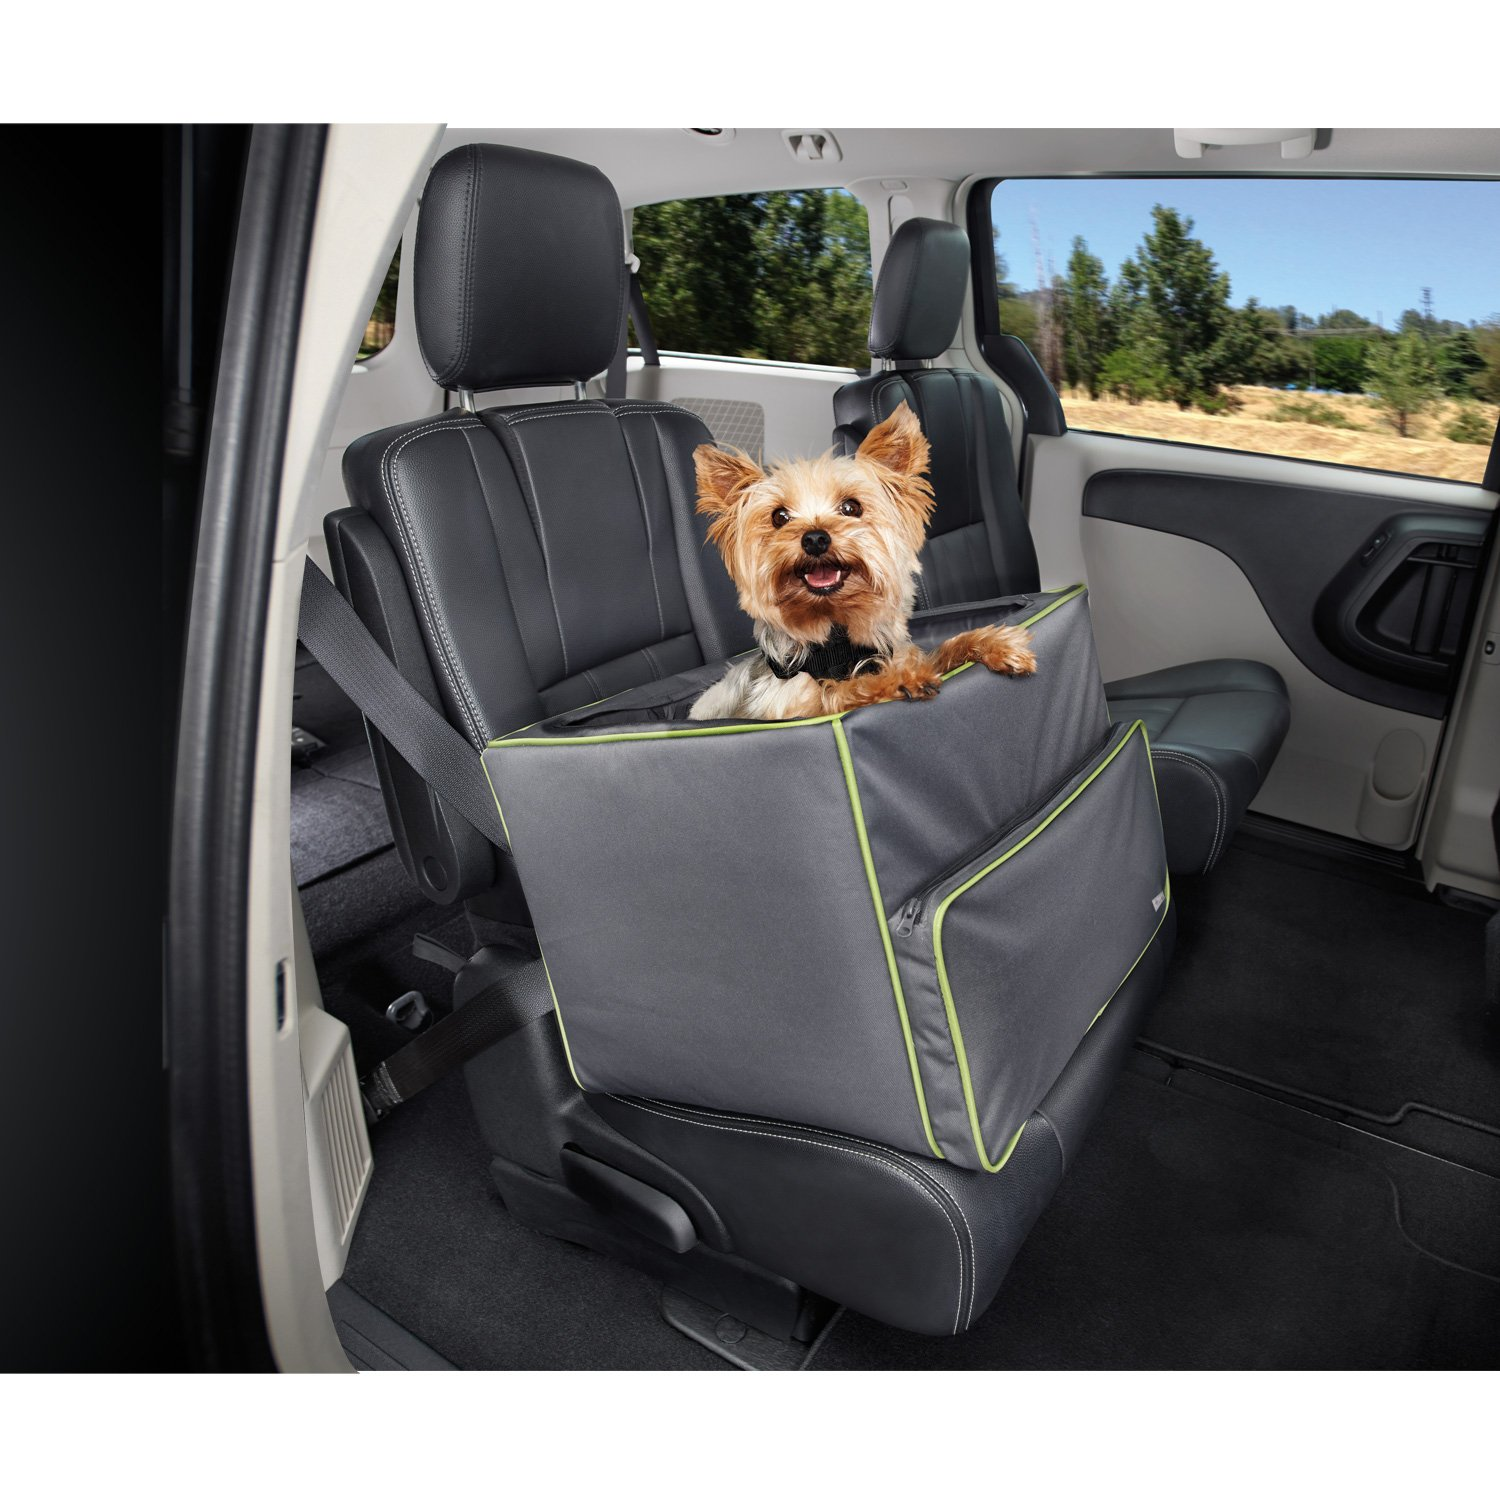 dog travel accessories dog car seat covers travel crates autos post. Black Bedroom Furniture Sets. Home Design Ideas